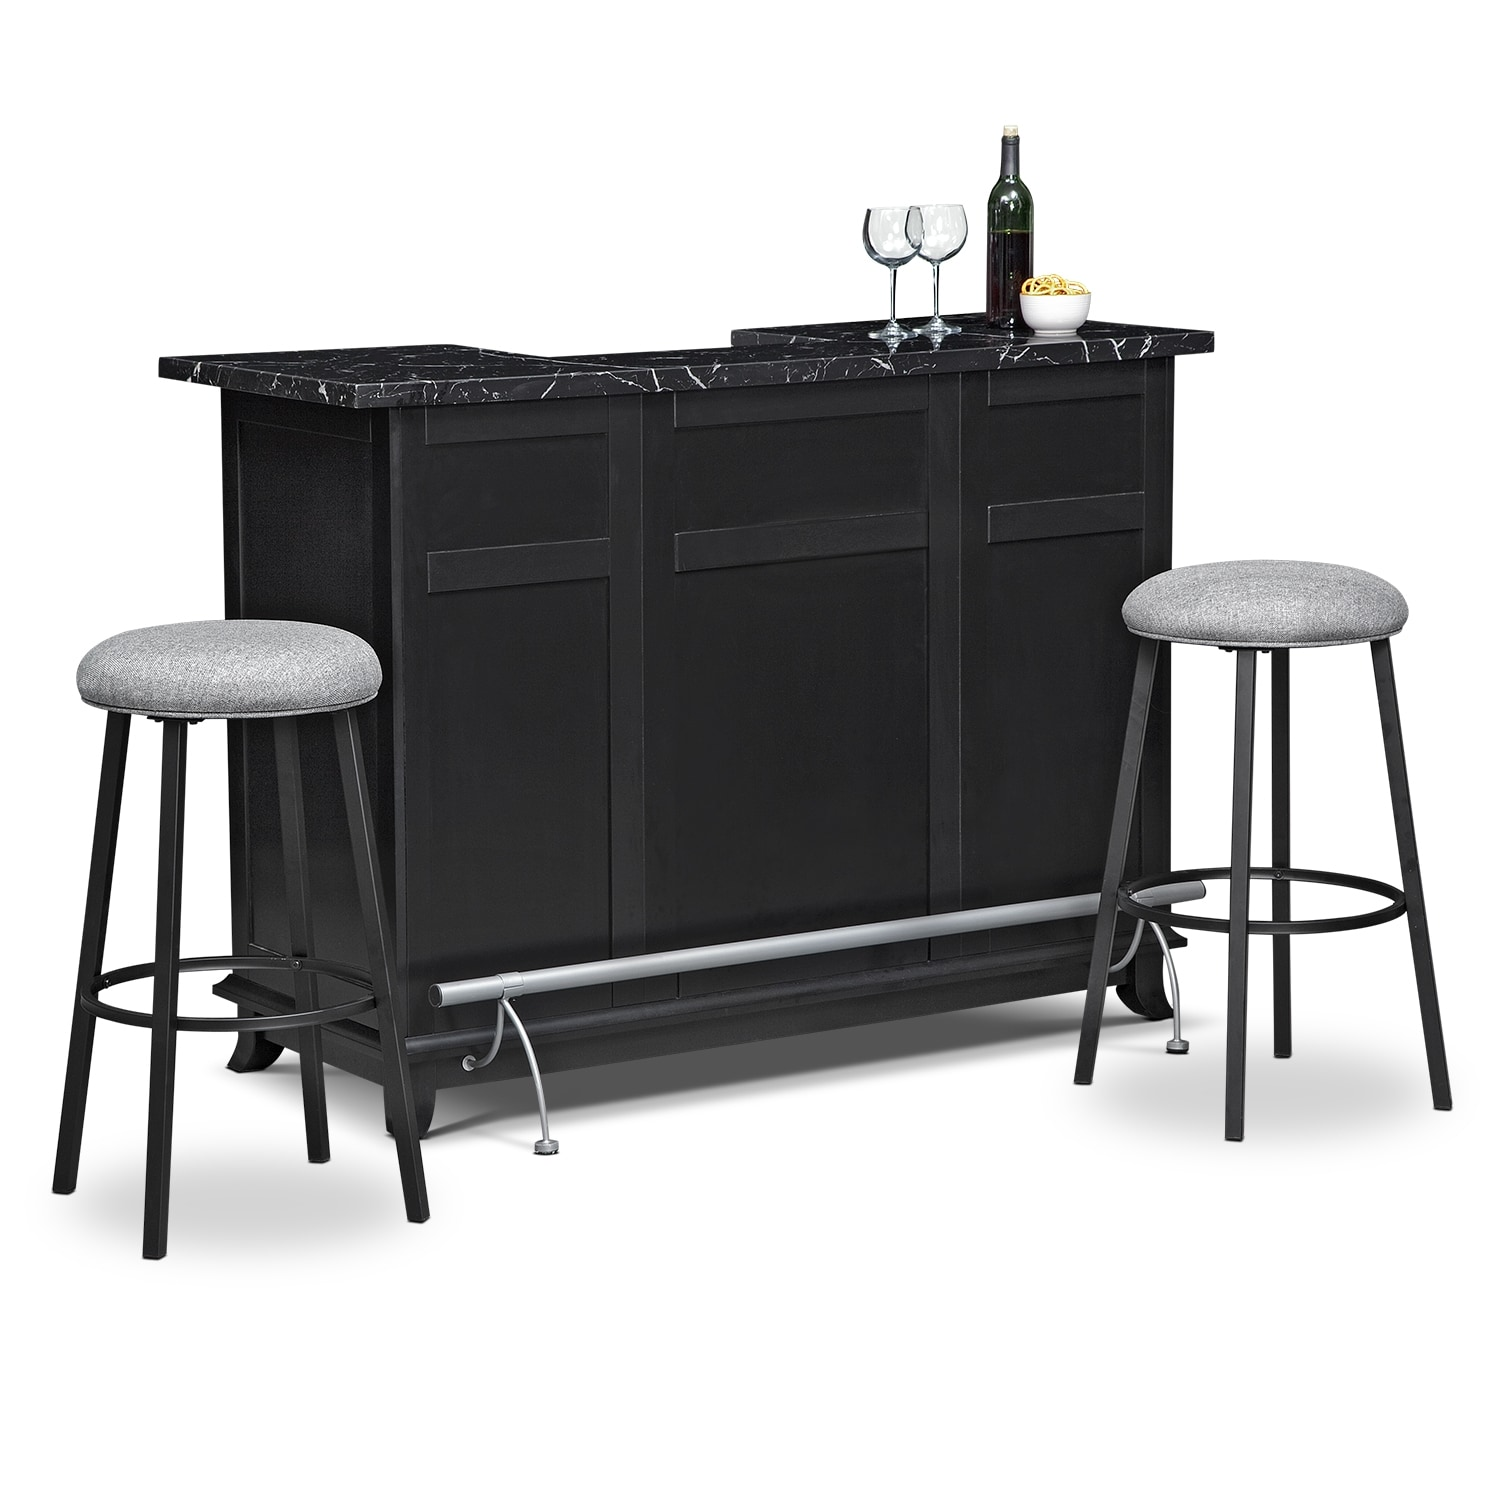 pandora 3 pc bar set value city furniture polyvore